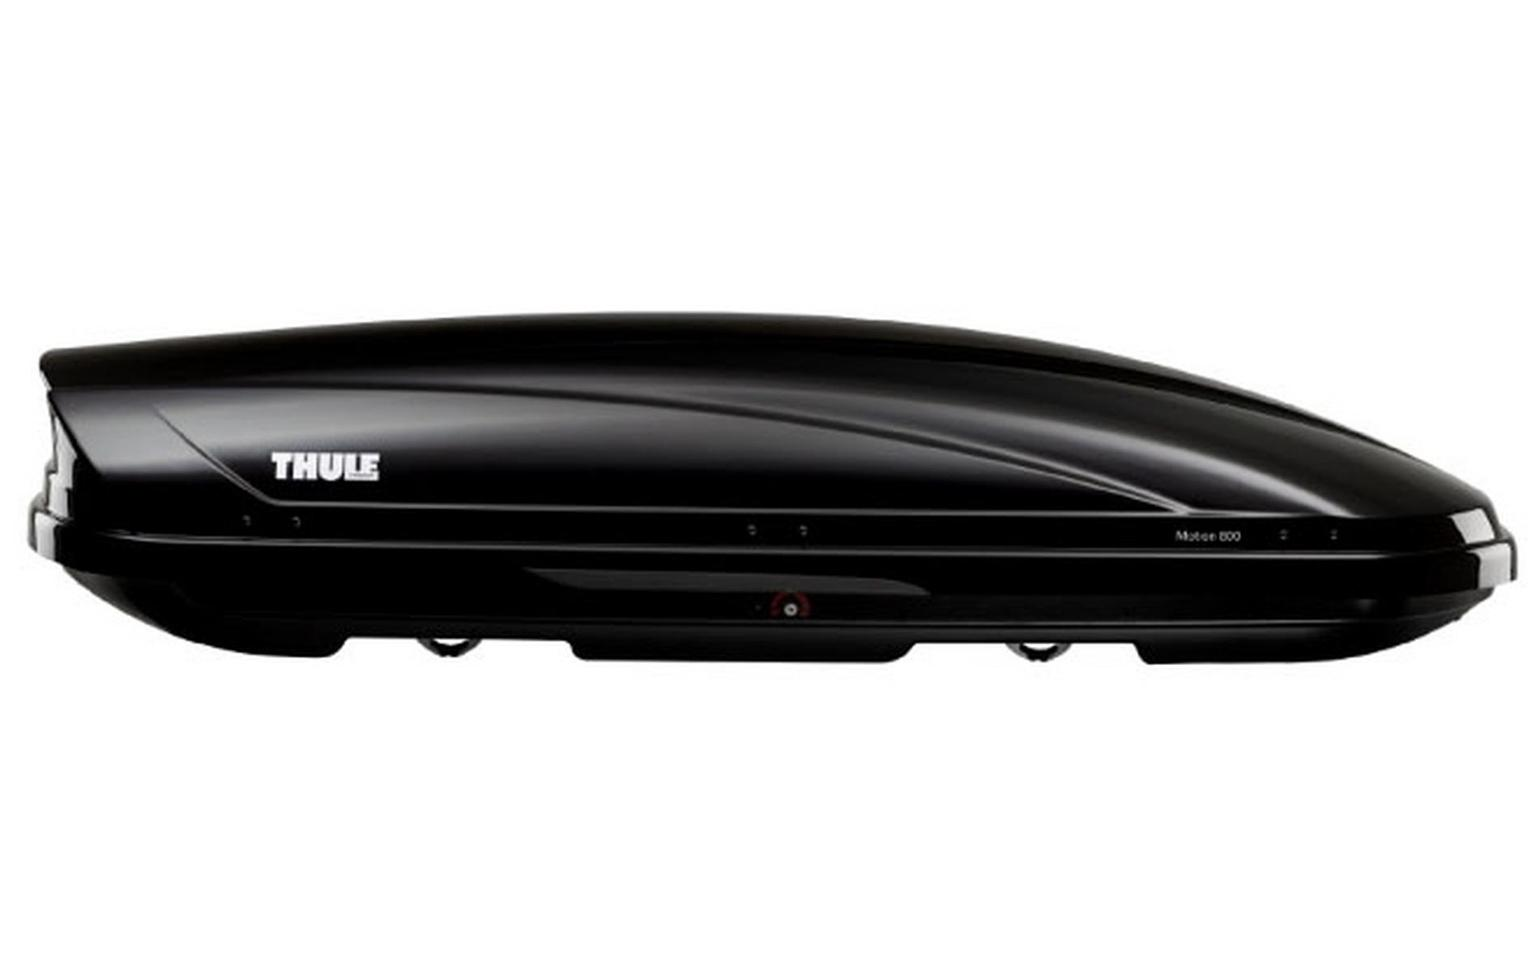 Thule Motion 800 Black Glossy Roof Box In Minsterley For 350 00 For Sale Shpock